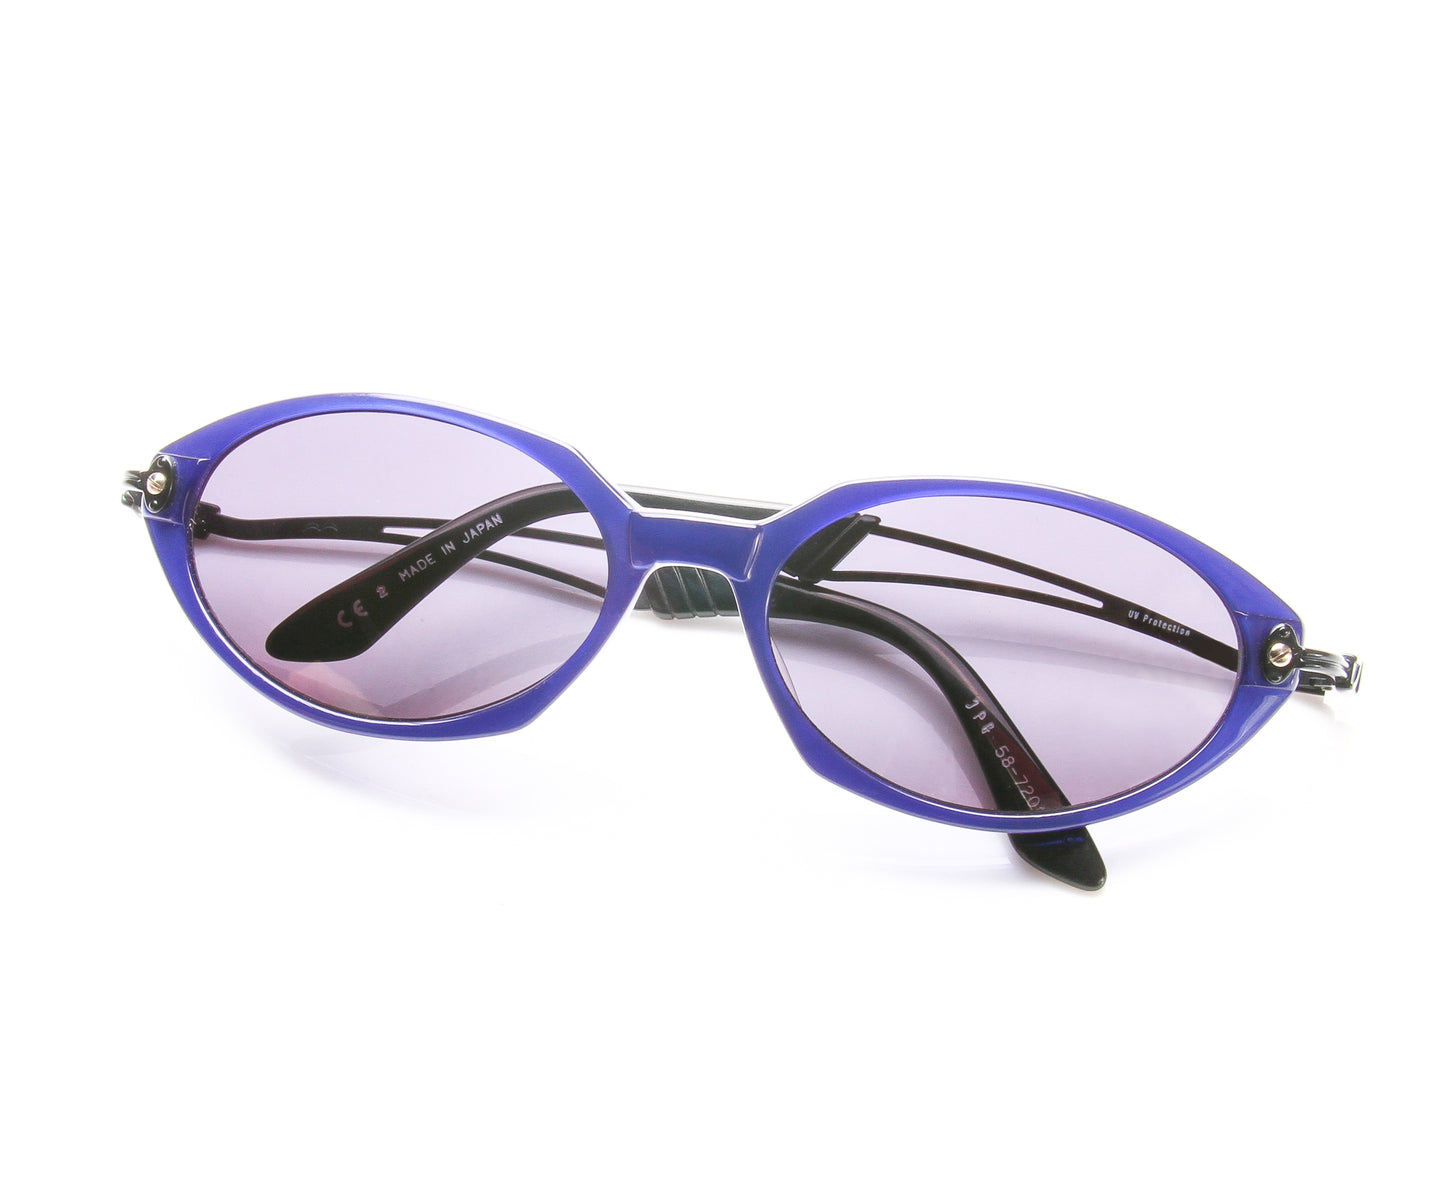 Jean Paul Gaultier 58 7201 2, Jean Paul Gaultier , glasses frames, eyeglasses online, eyeglass frames, mens glasses, womens glasses, buy glasses online, designer eyeglasses, vintage sunglasses, retro sunglasses, vintage glasses, sunglass, eyeglass, glasses, lens, vintage frames company, vf